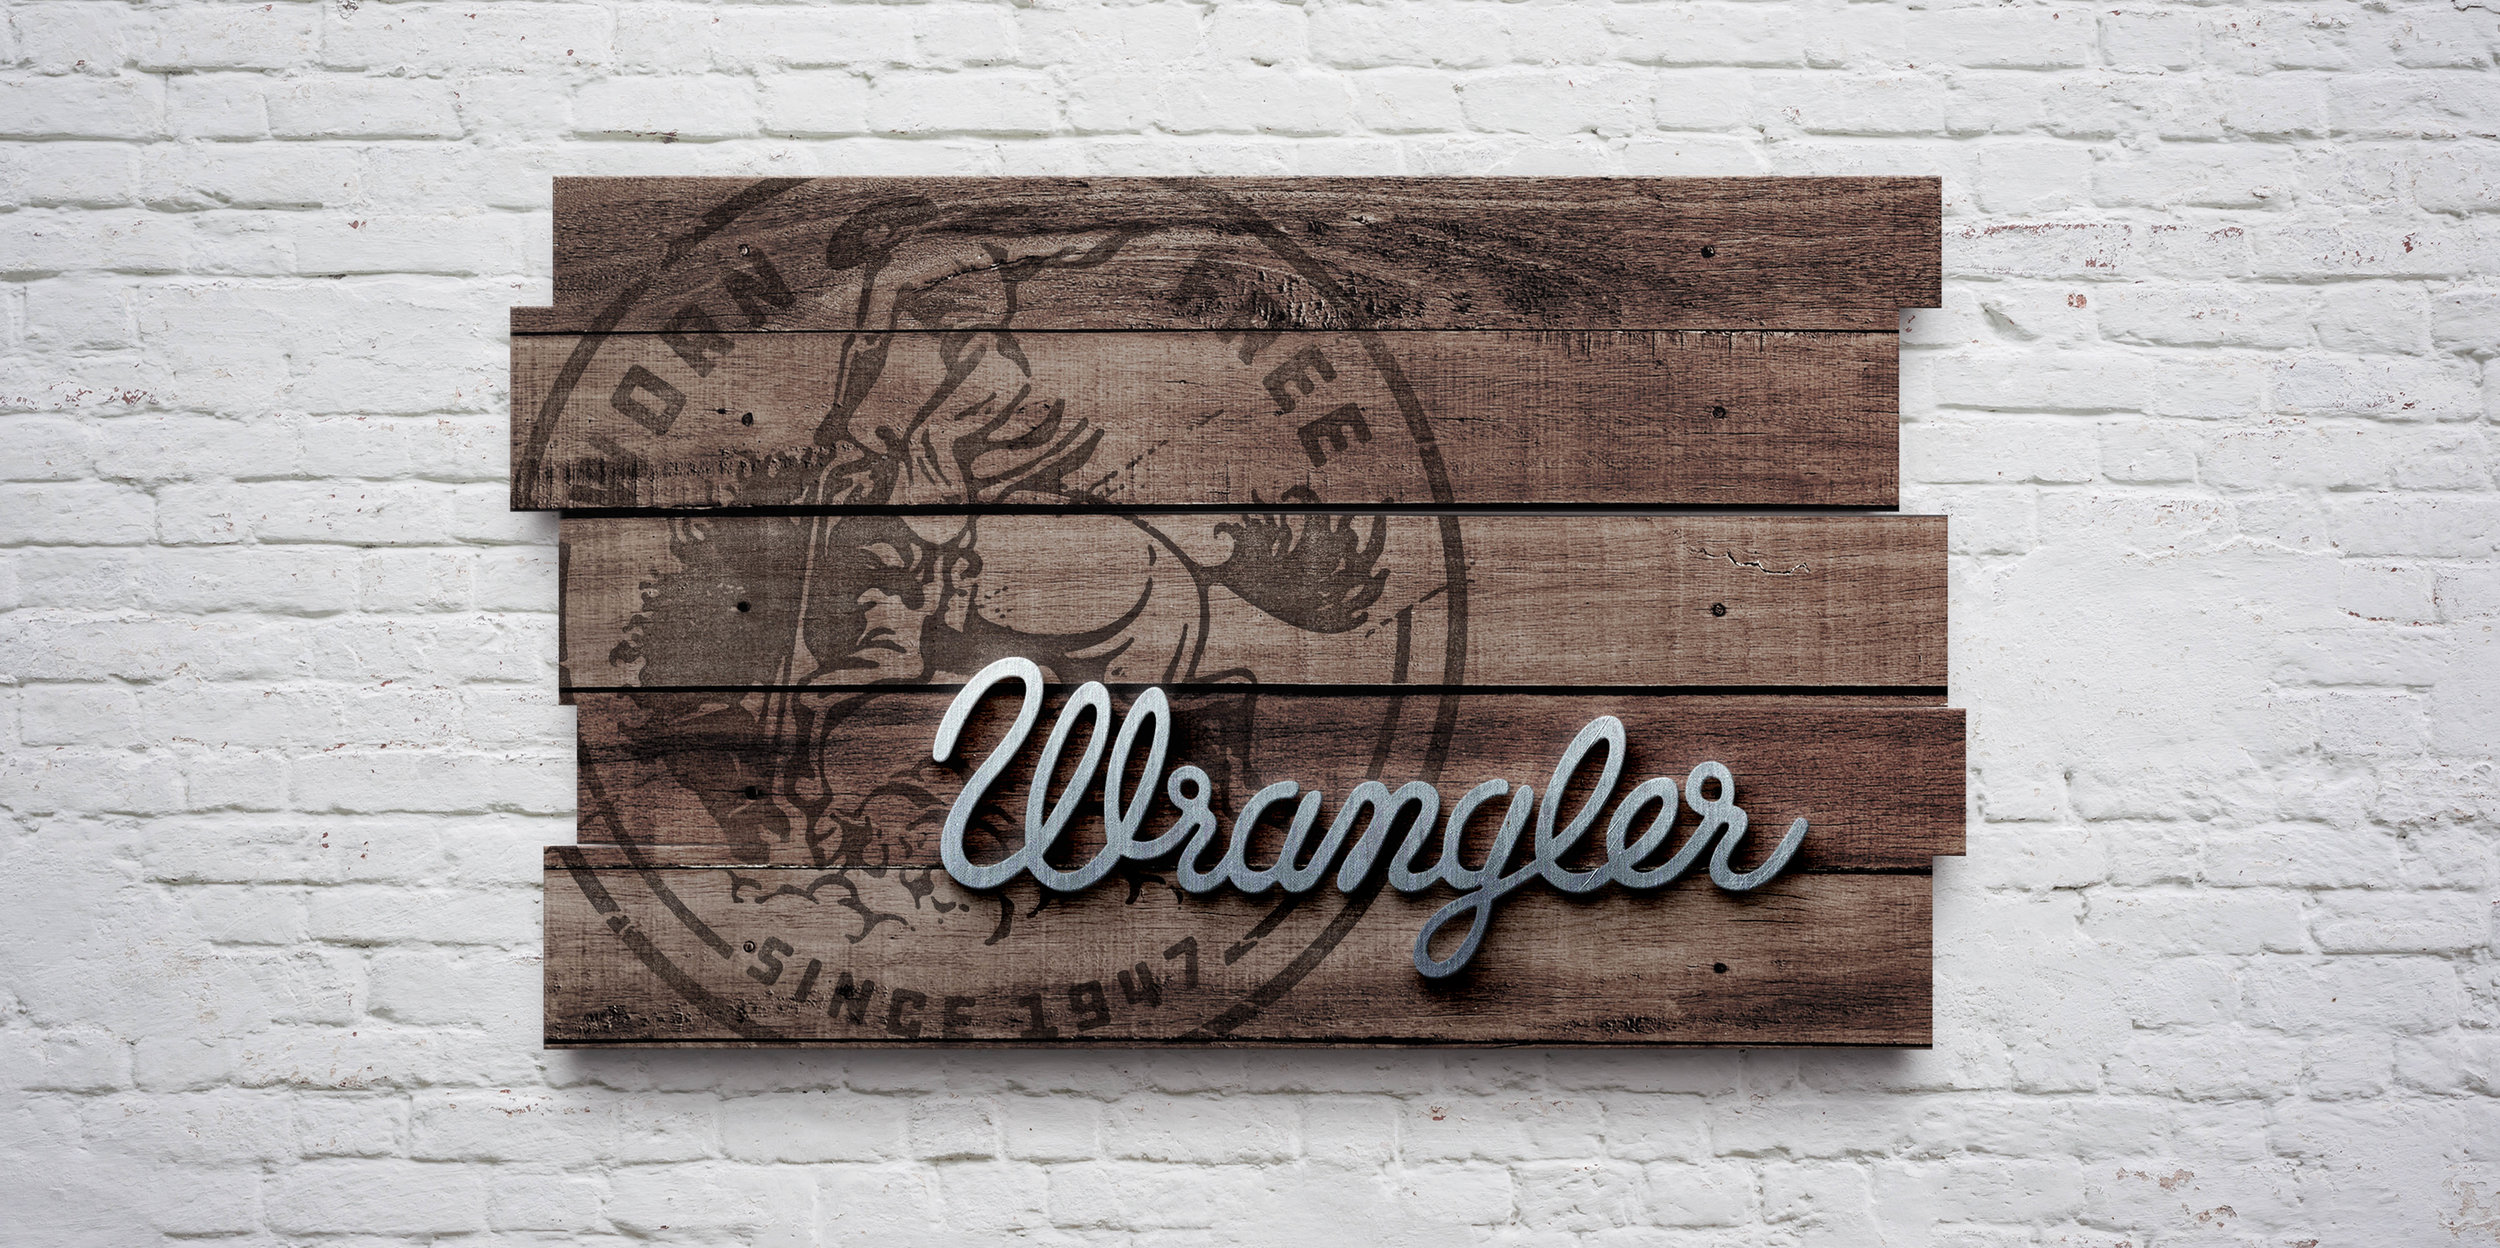 Wrangler _Retail_Sign.jpg